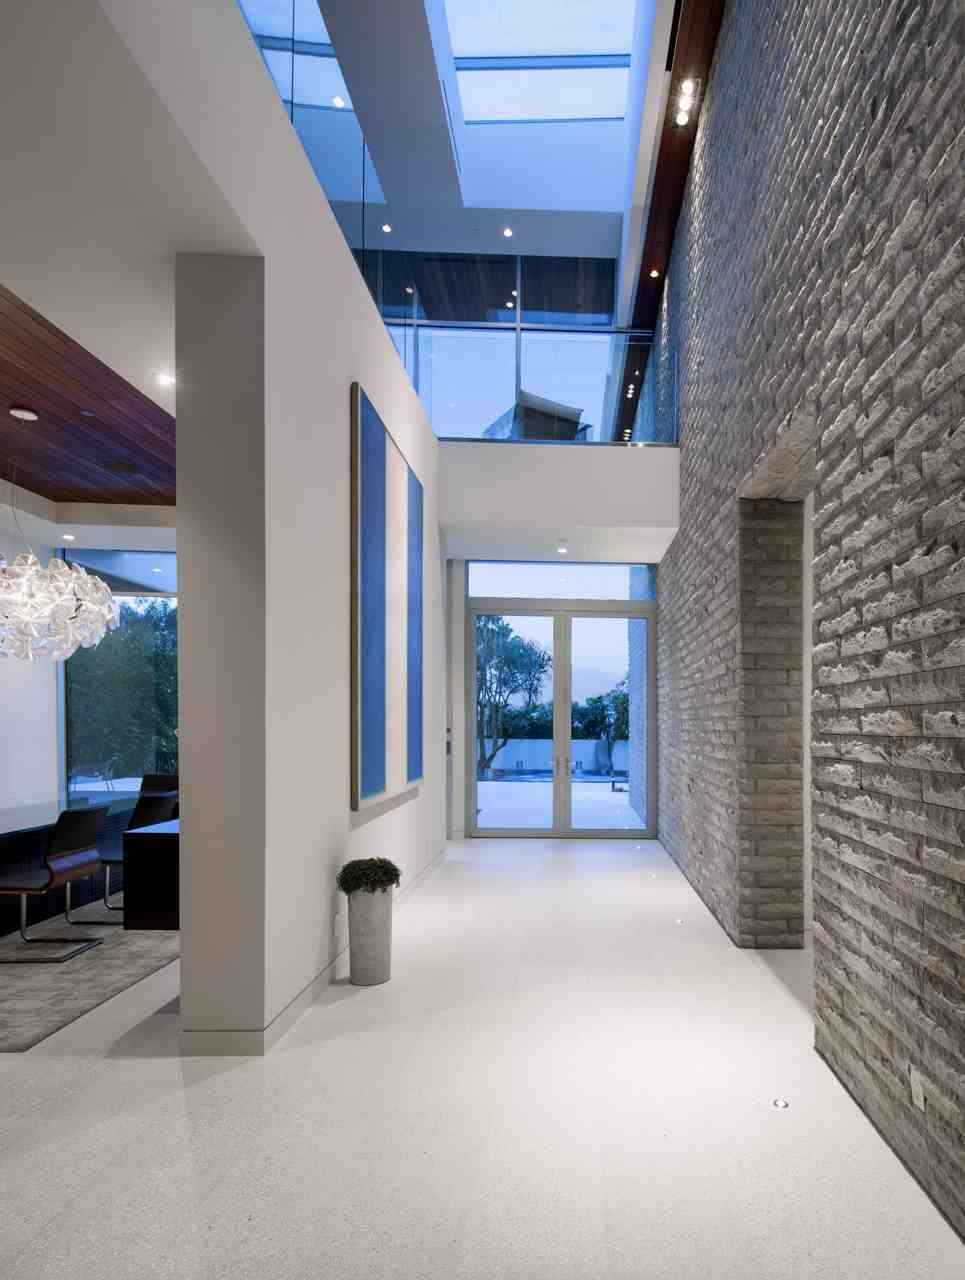 Ultramodern hillside los angeles jet set estate for Hallway photos